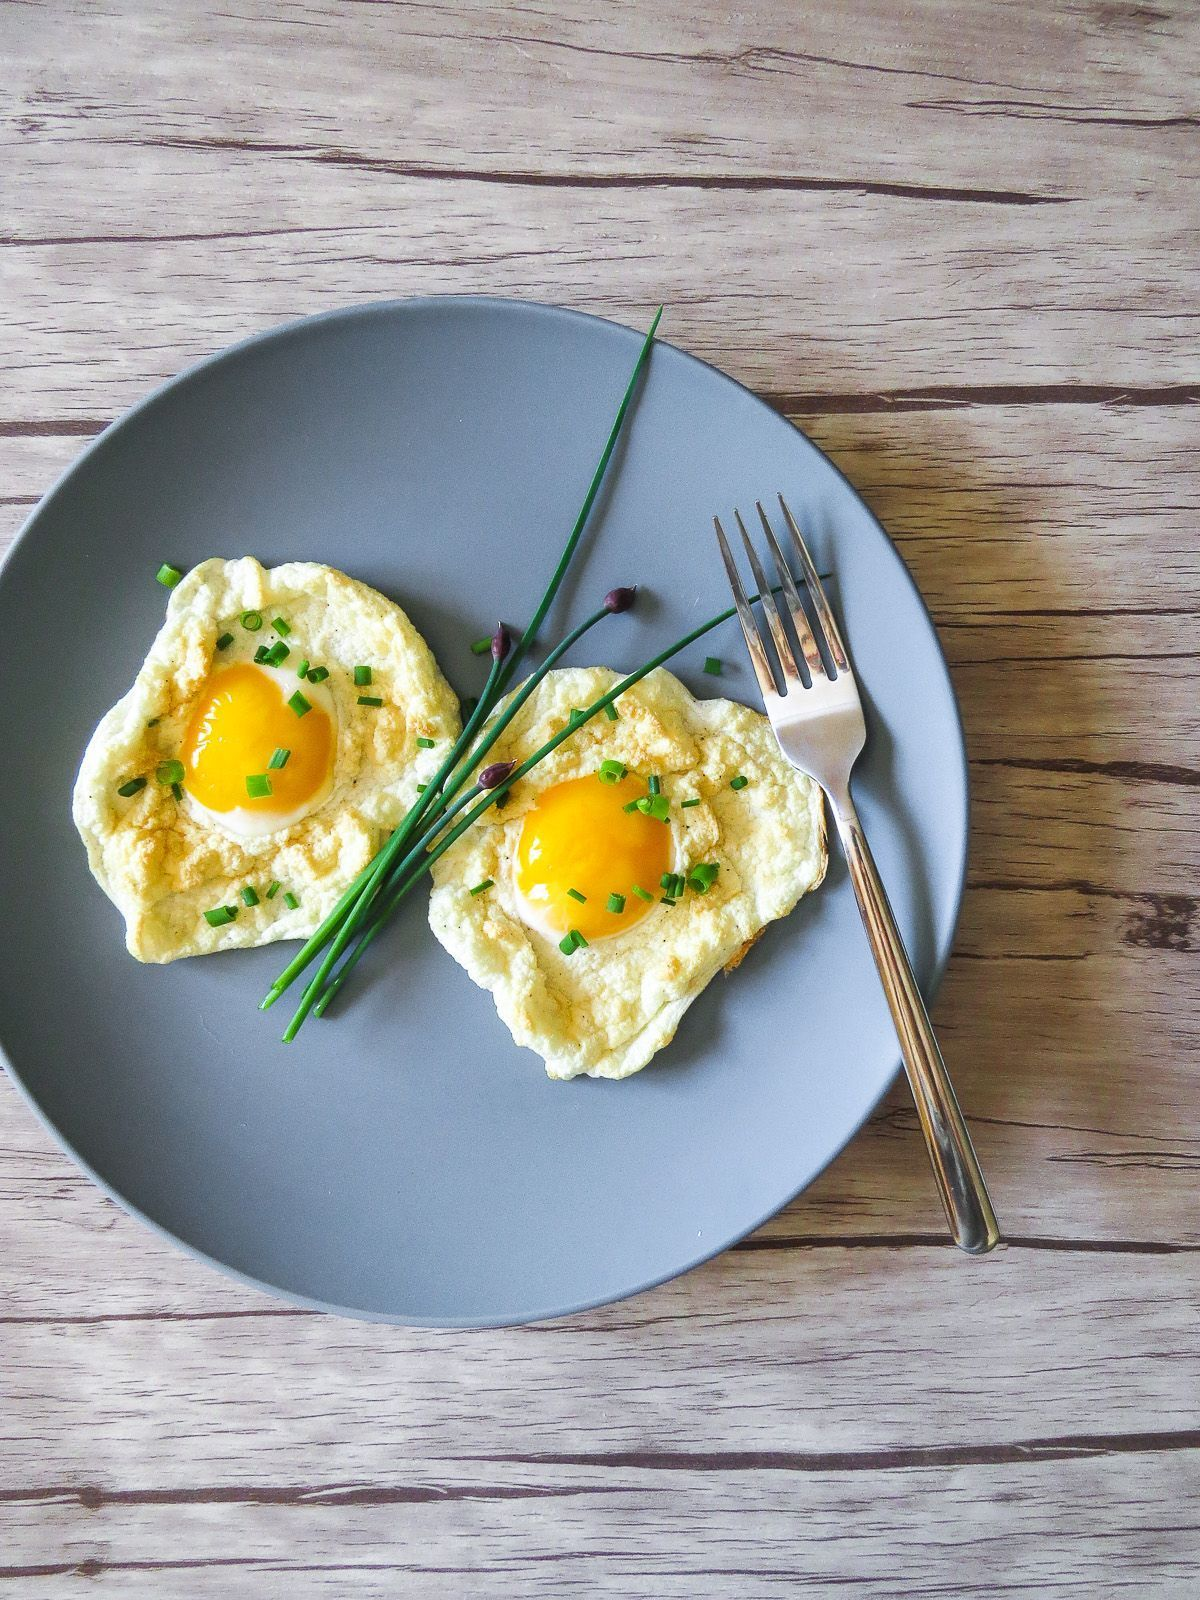 Cloud Eggs #cloudeggs Cloud Eggs - The latest breakfast egg trend! Cloud eggs or eggs in clouds are super customizable and so easy to make! Perfect for brunch for one, a couple or many! #cloudeggs Cloud Eggs #cloudeggs Cloud Eggs - The latest breakfast egg trend! Cloud eggs or eggs in clouds are super customizable and so easy to make! Perfect for brunch for one, a couple or many! #cloudeggs